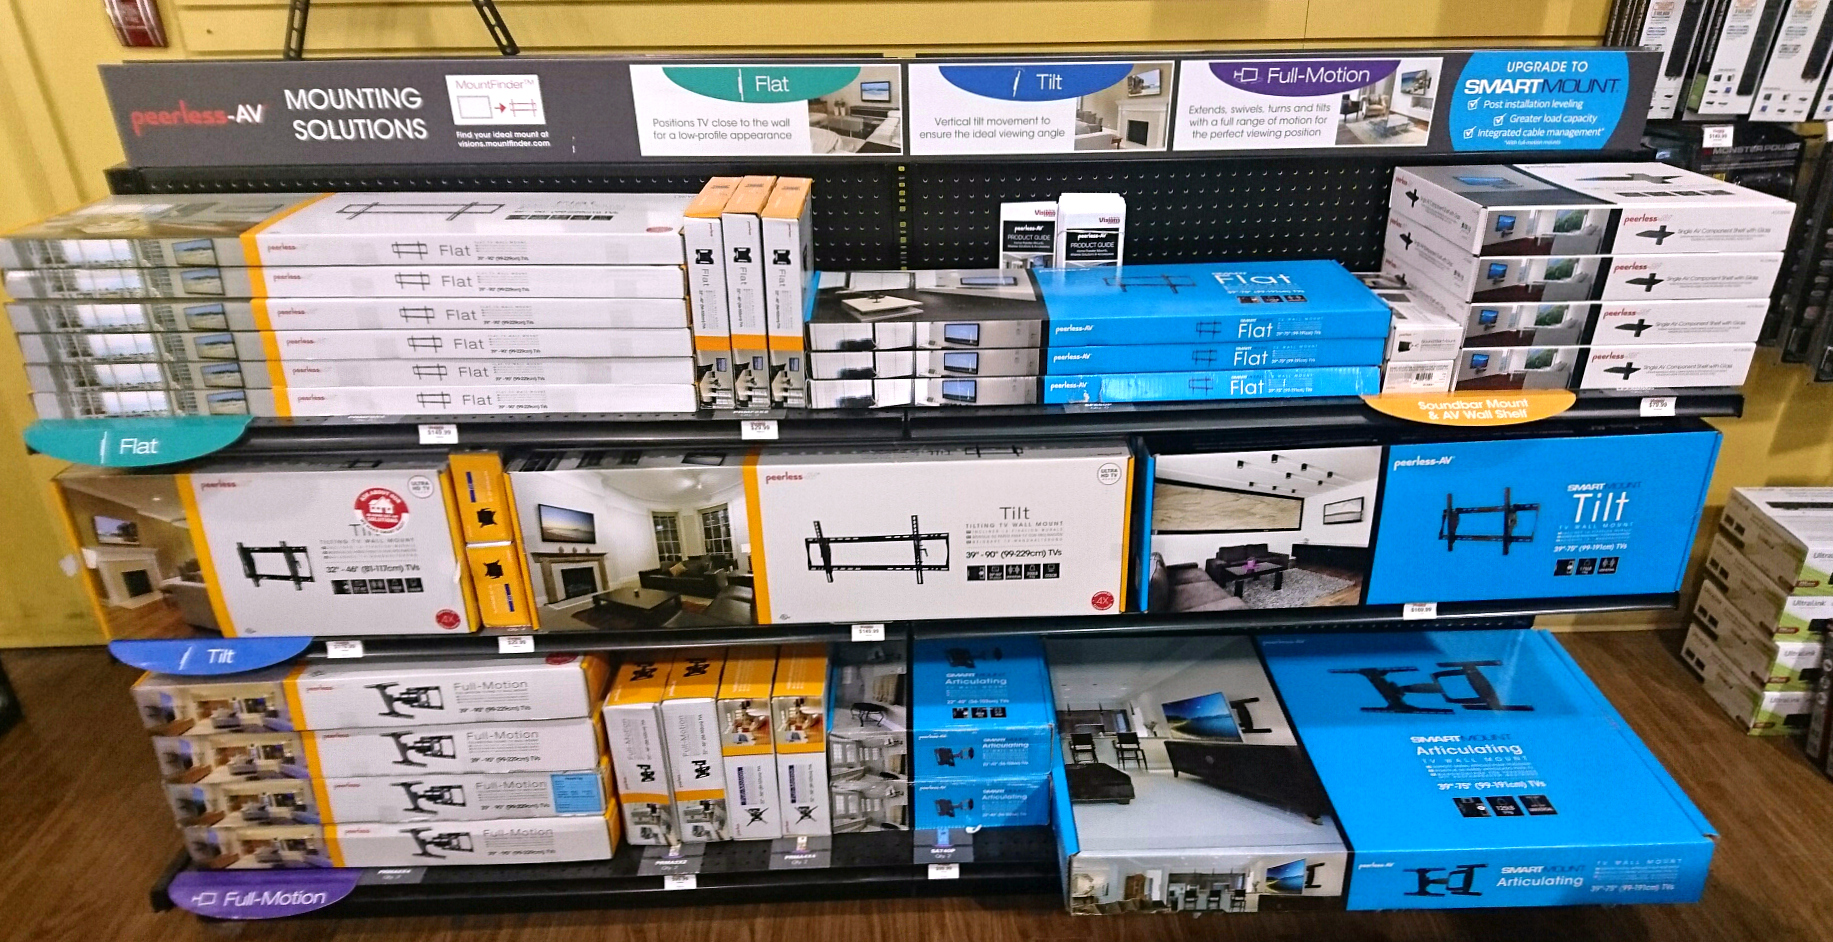 Peerless-AV ® Works with Visions Electronics to Create a Strong Retail & B 2 B Audio Visual Solutions Mix